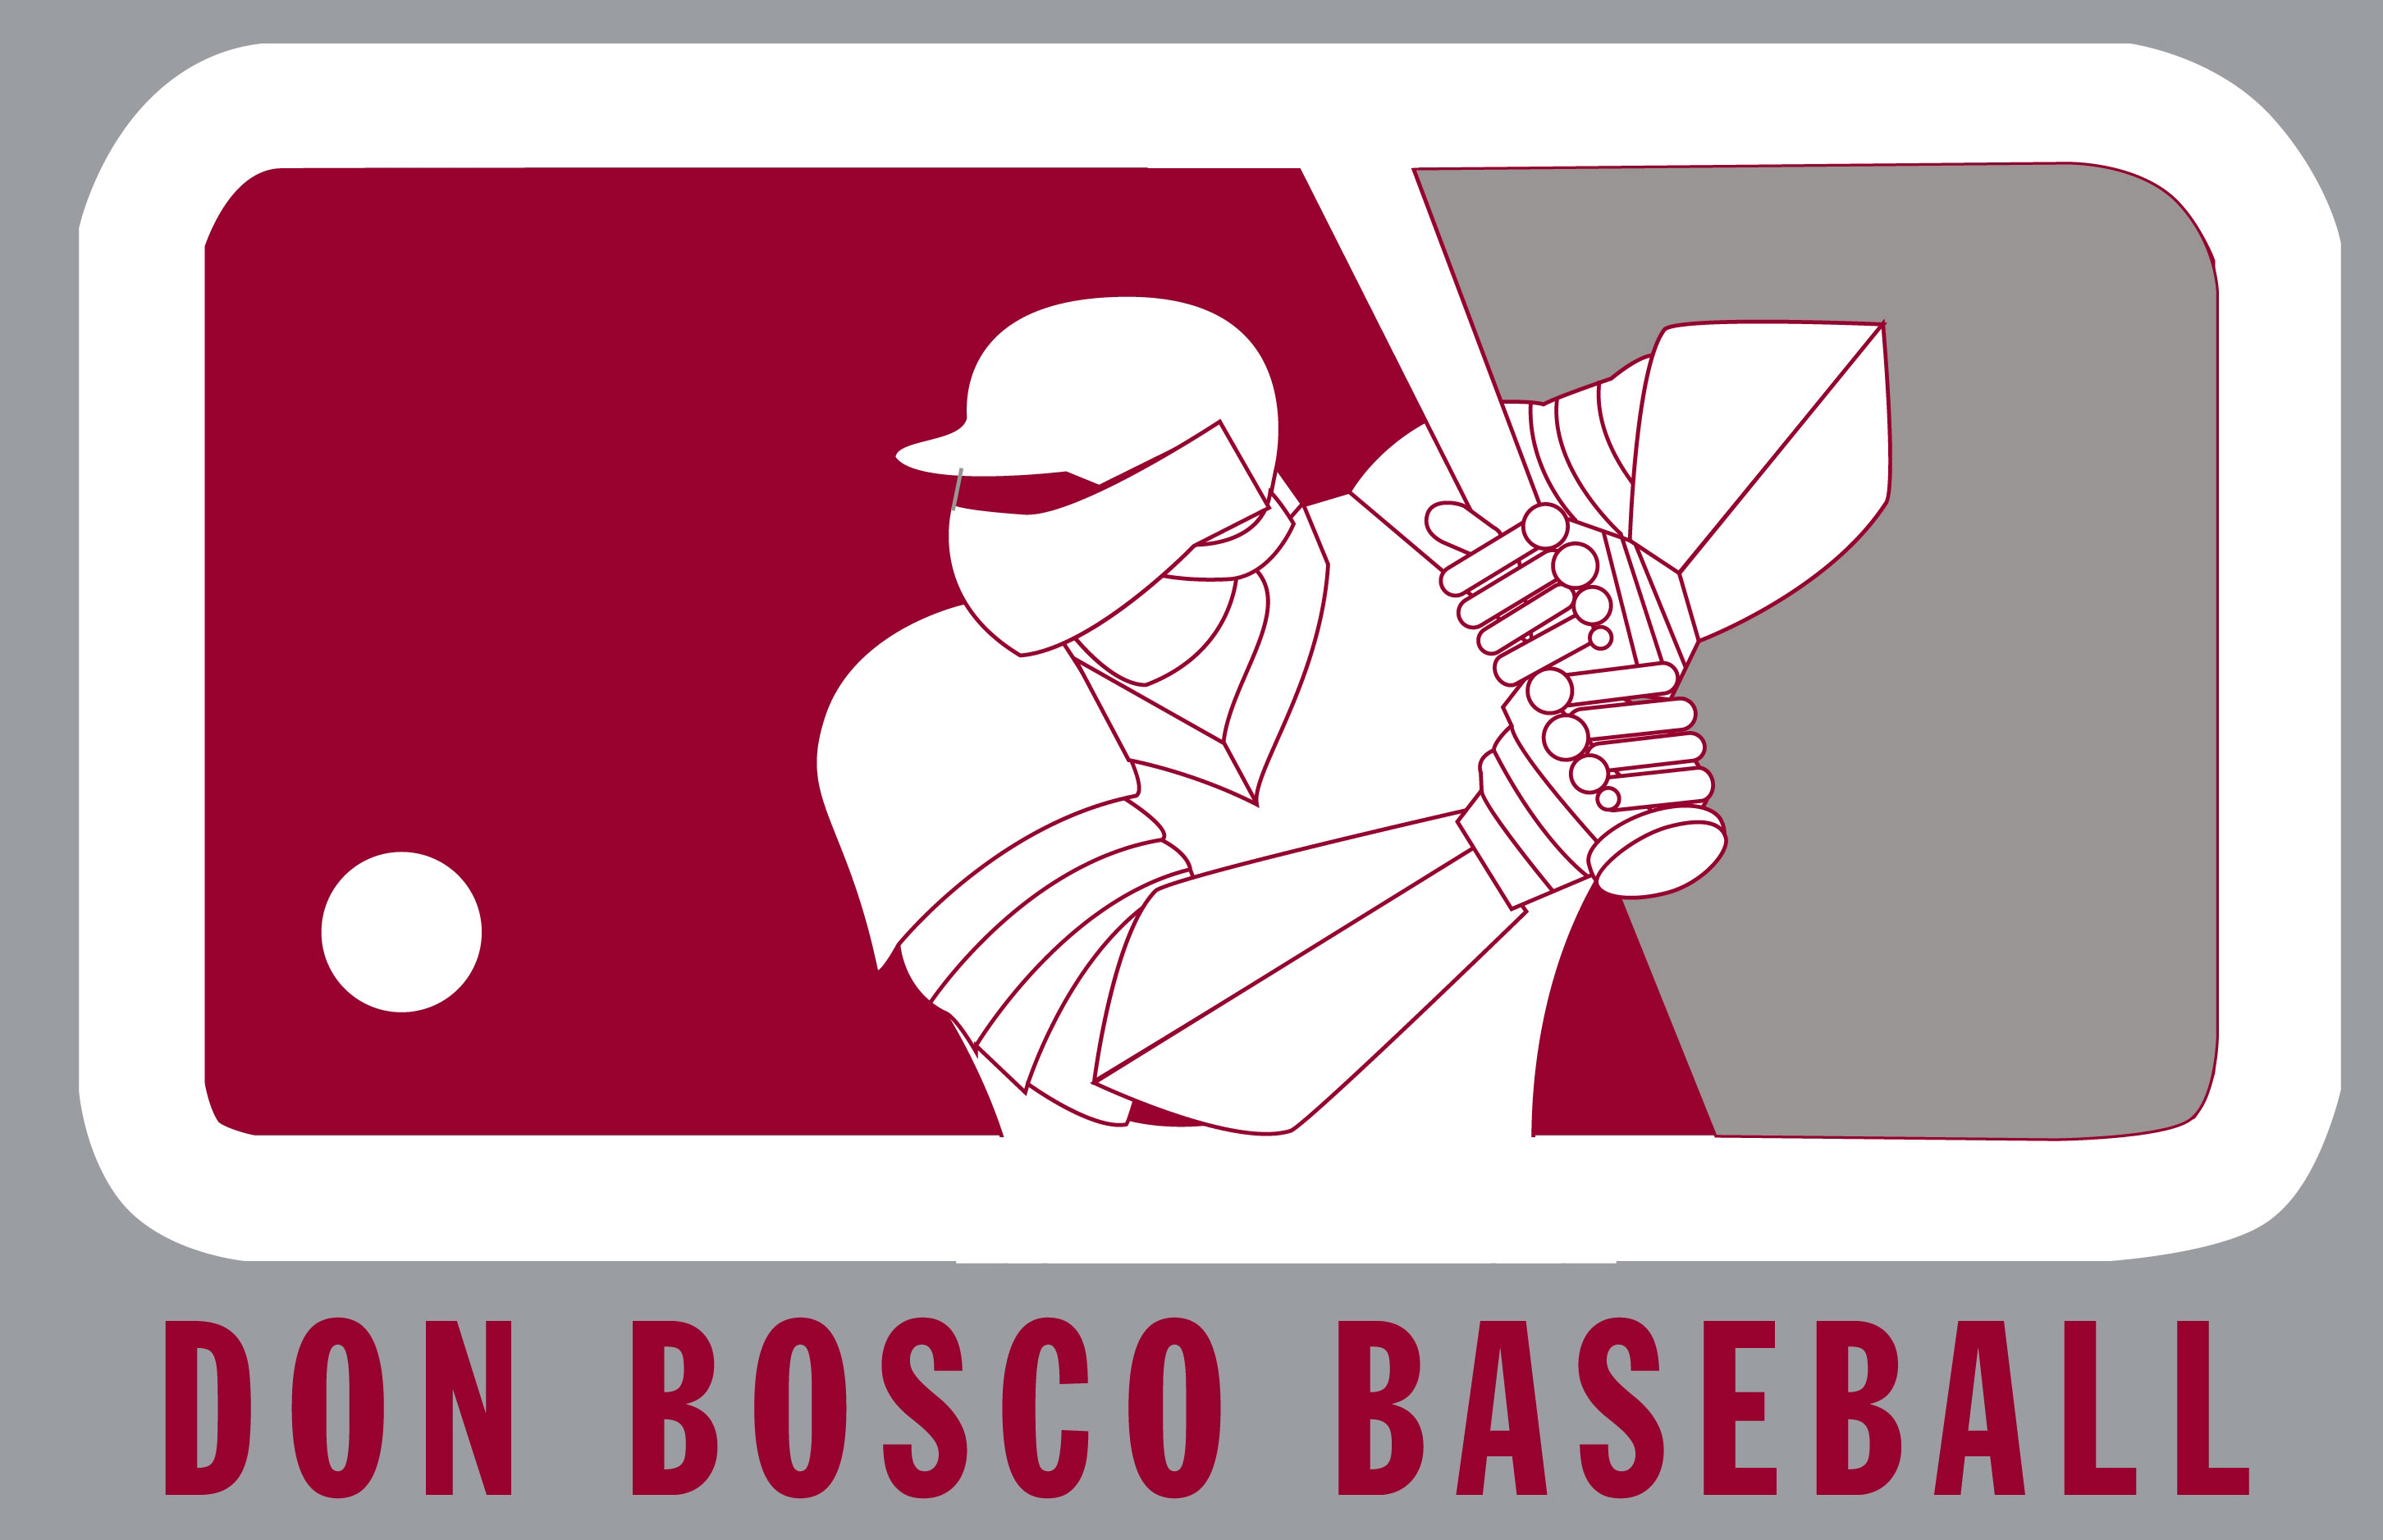 Don Bosco Baseball